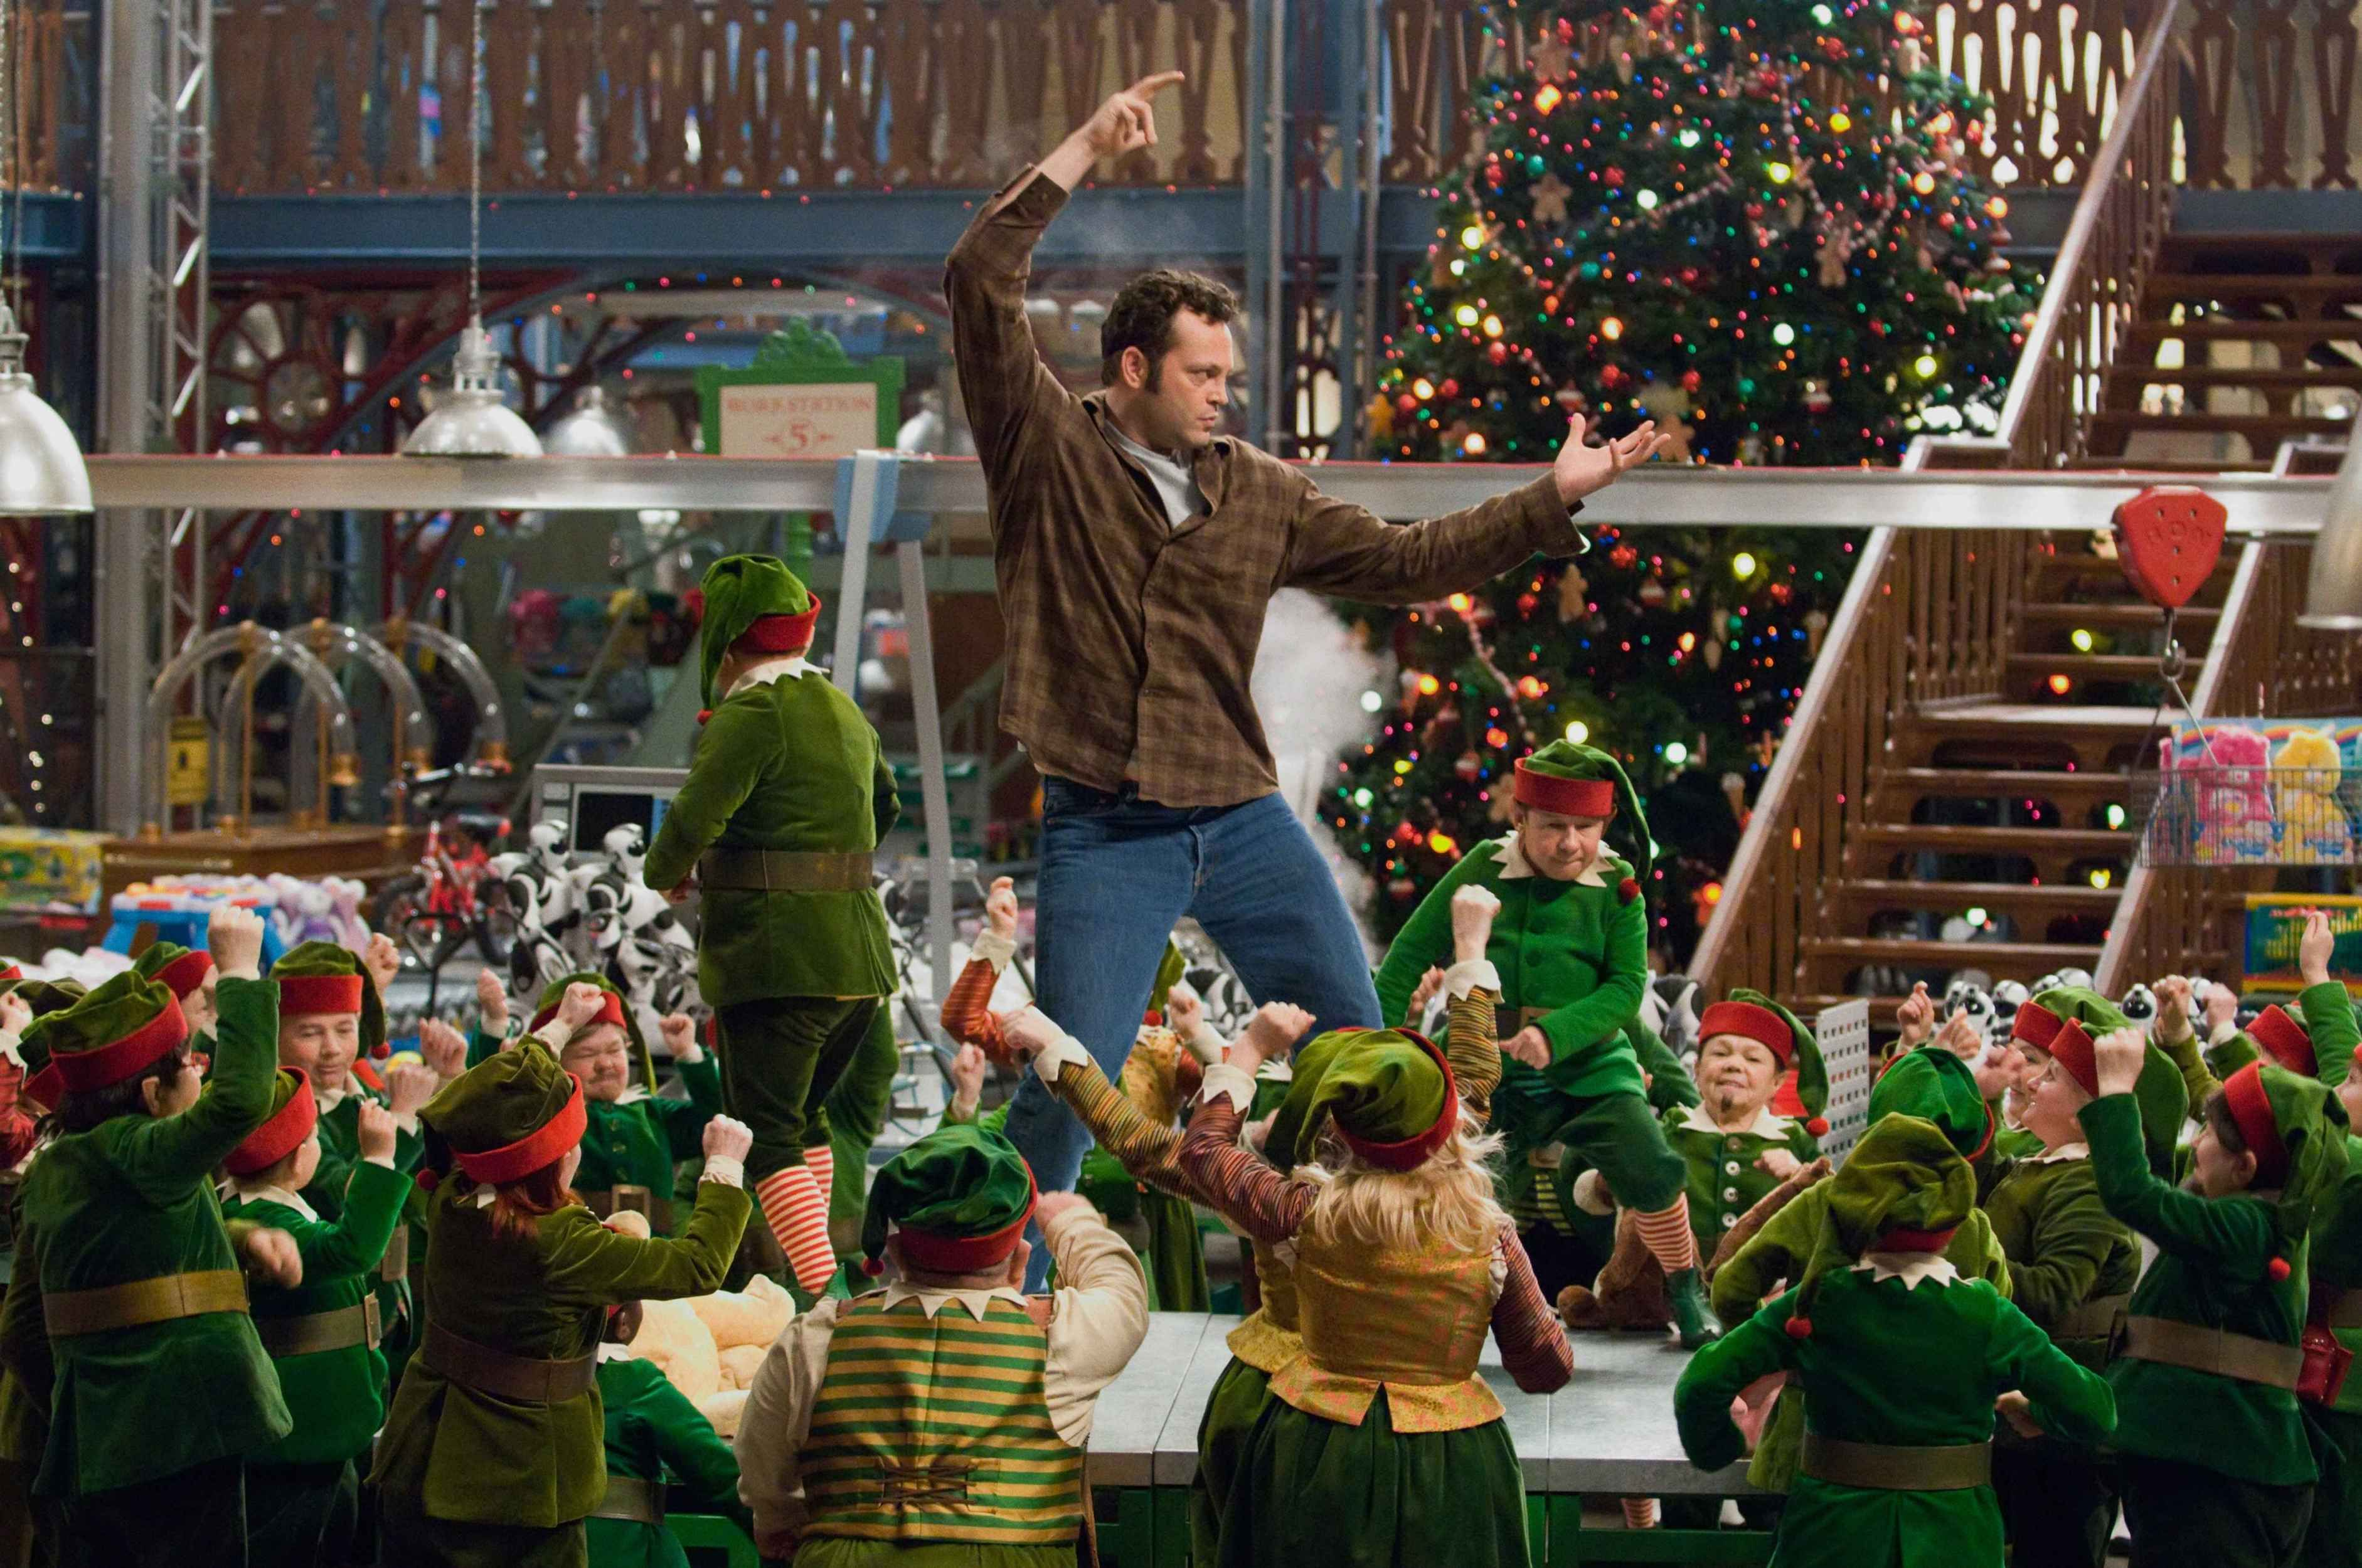 Fred Claus Movie Still 2007 Vince Vaughn As Fred Claus Fred Claus Classic Christmas Movies Christmas Movies